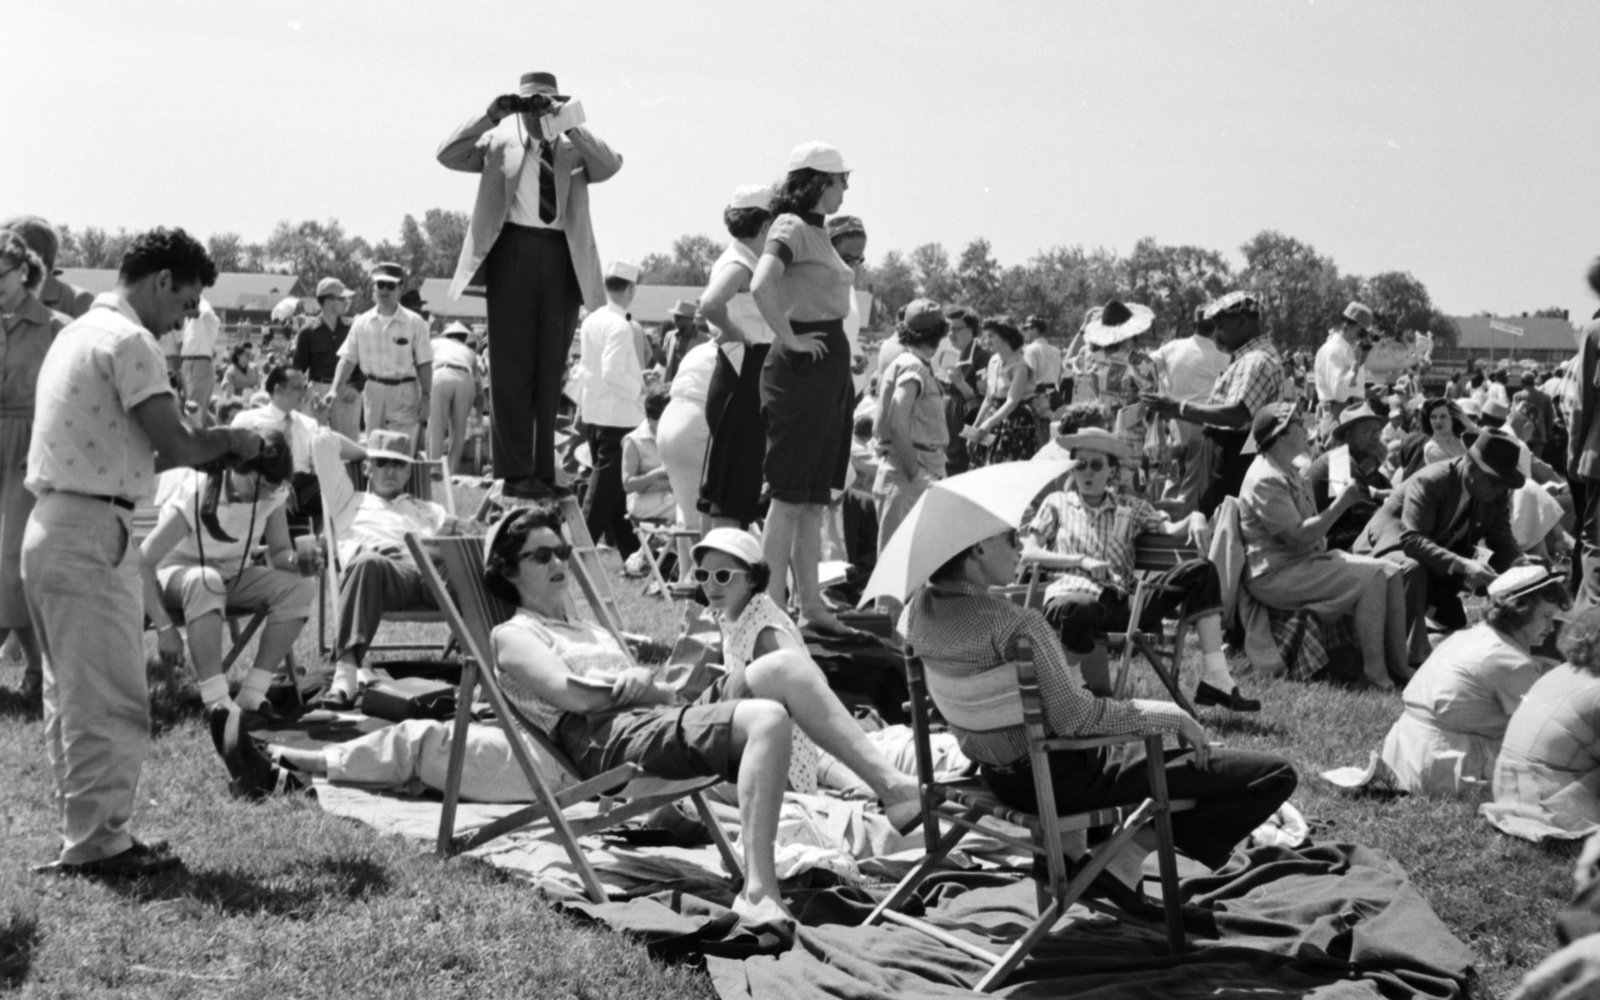 Kentucky Derby Spectators 1955